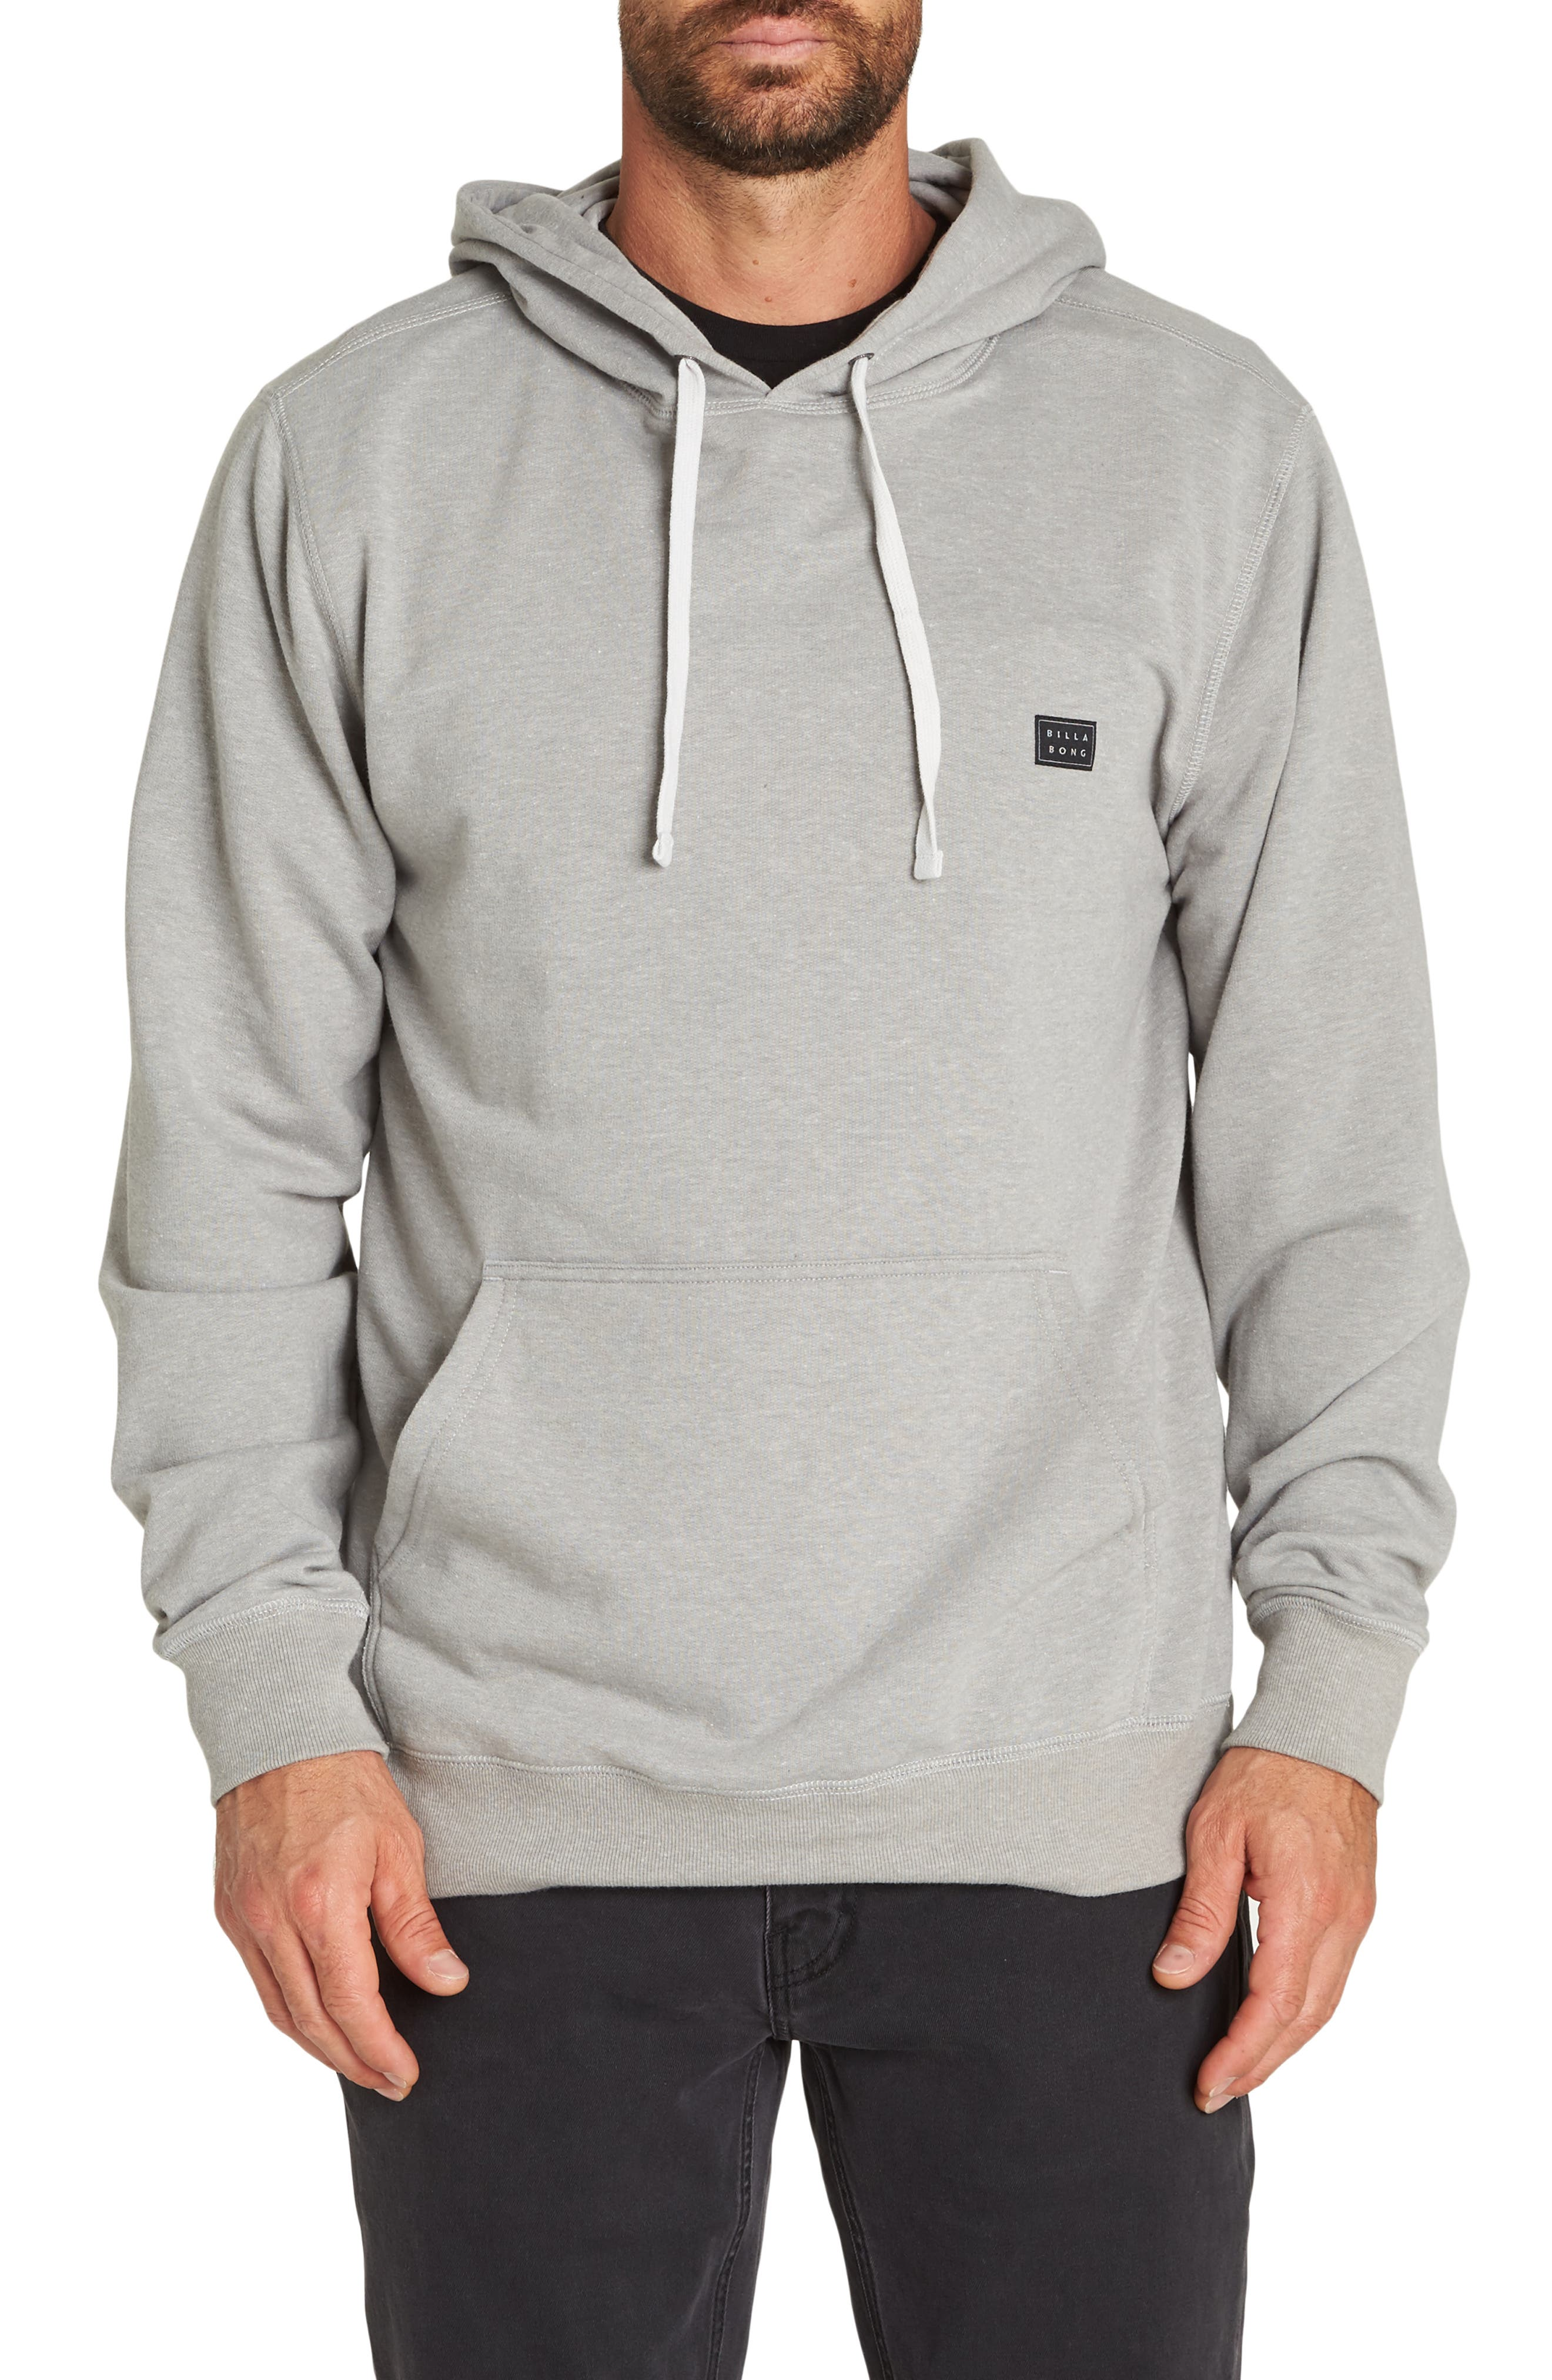 All Day Hoodie,                         Main,                         color, GREY